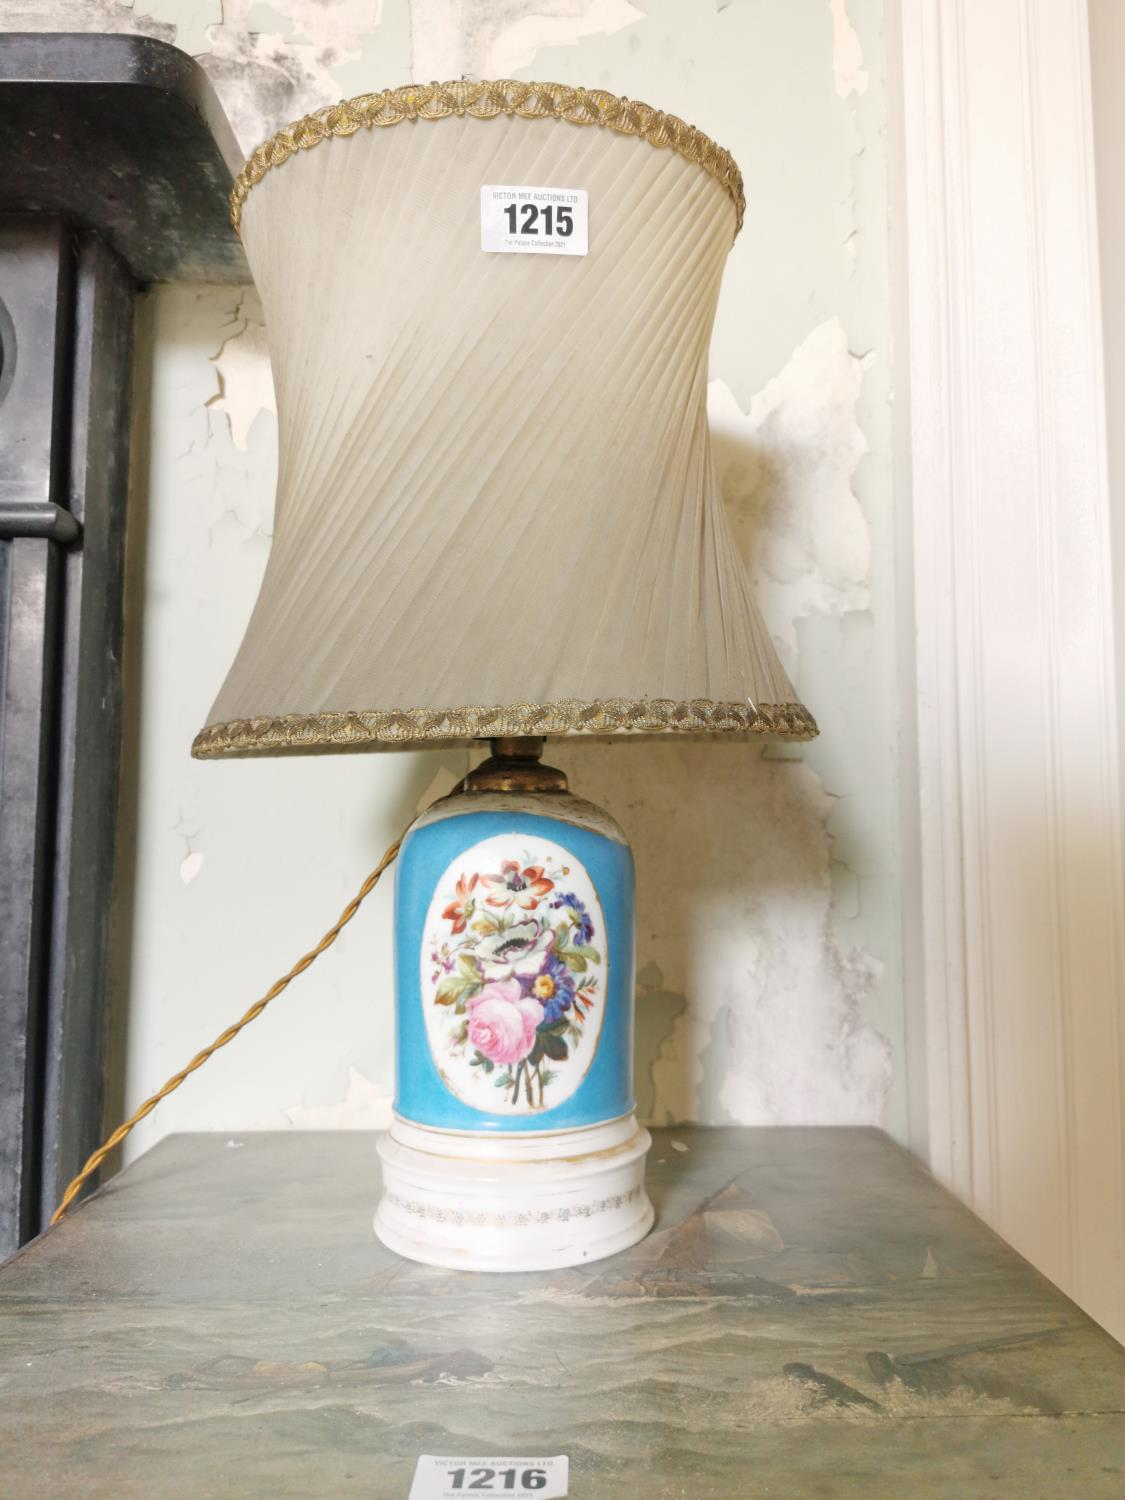 19th C. ceramic hand painted table lamp.